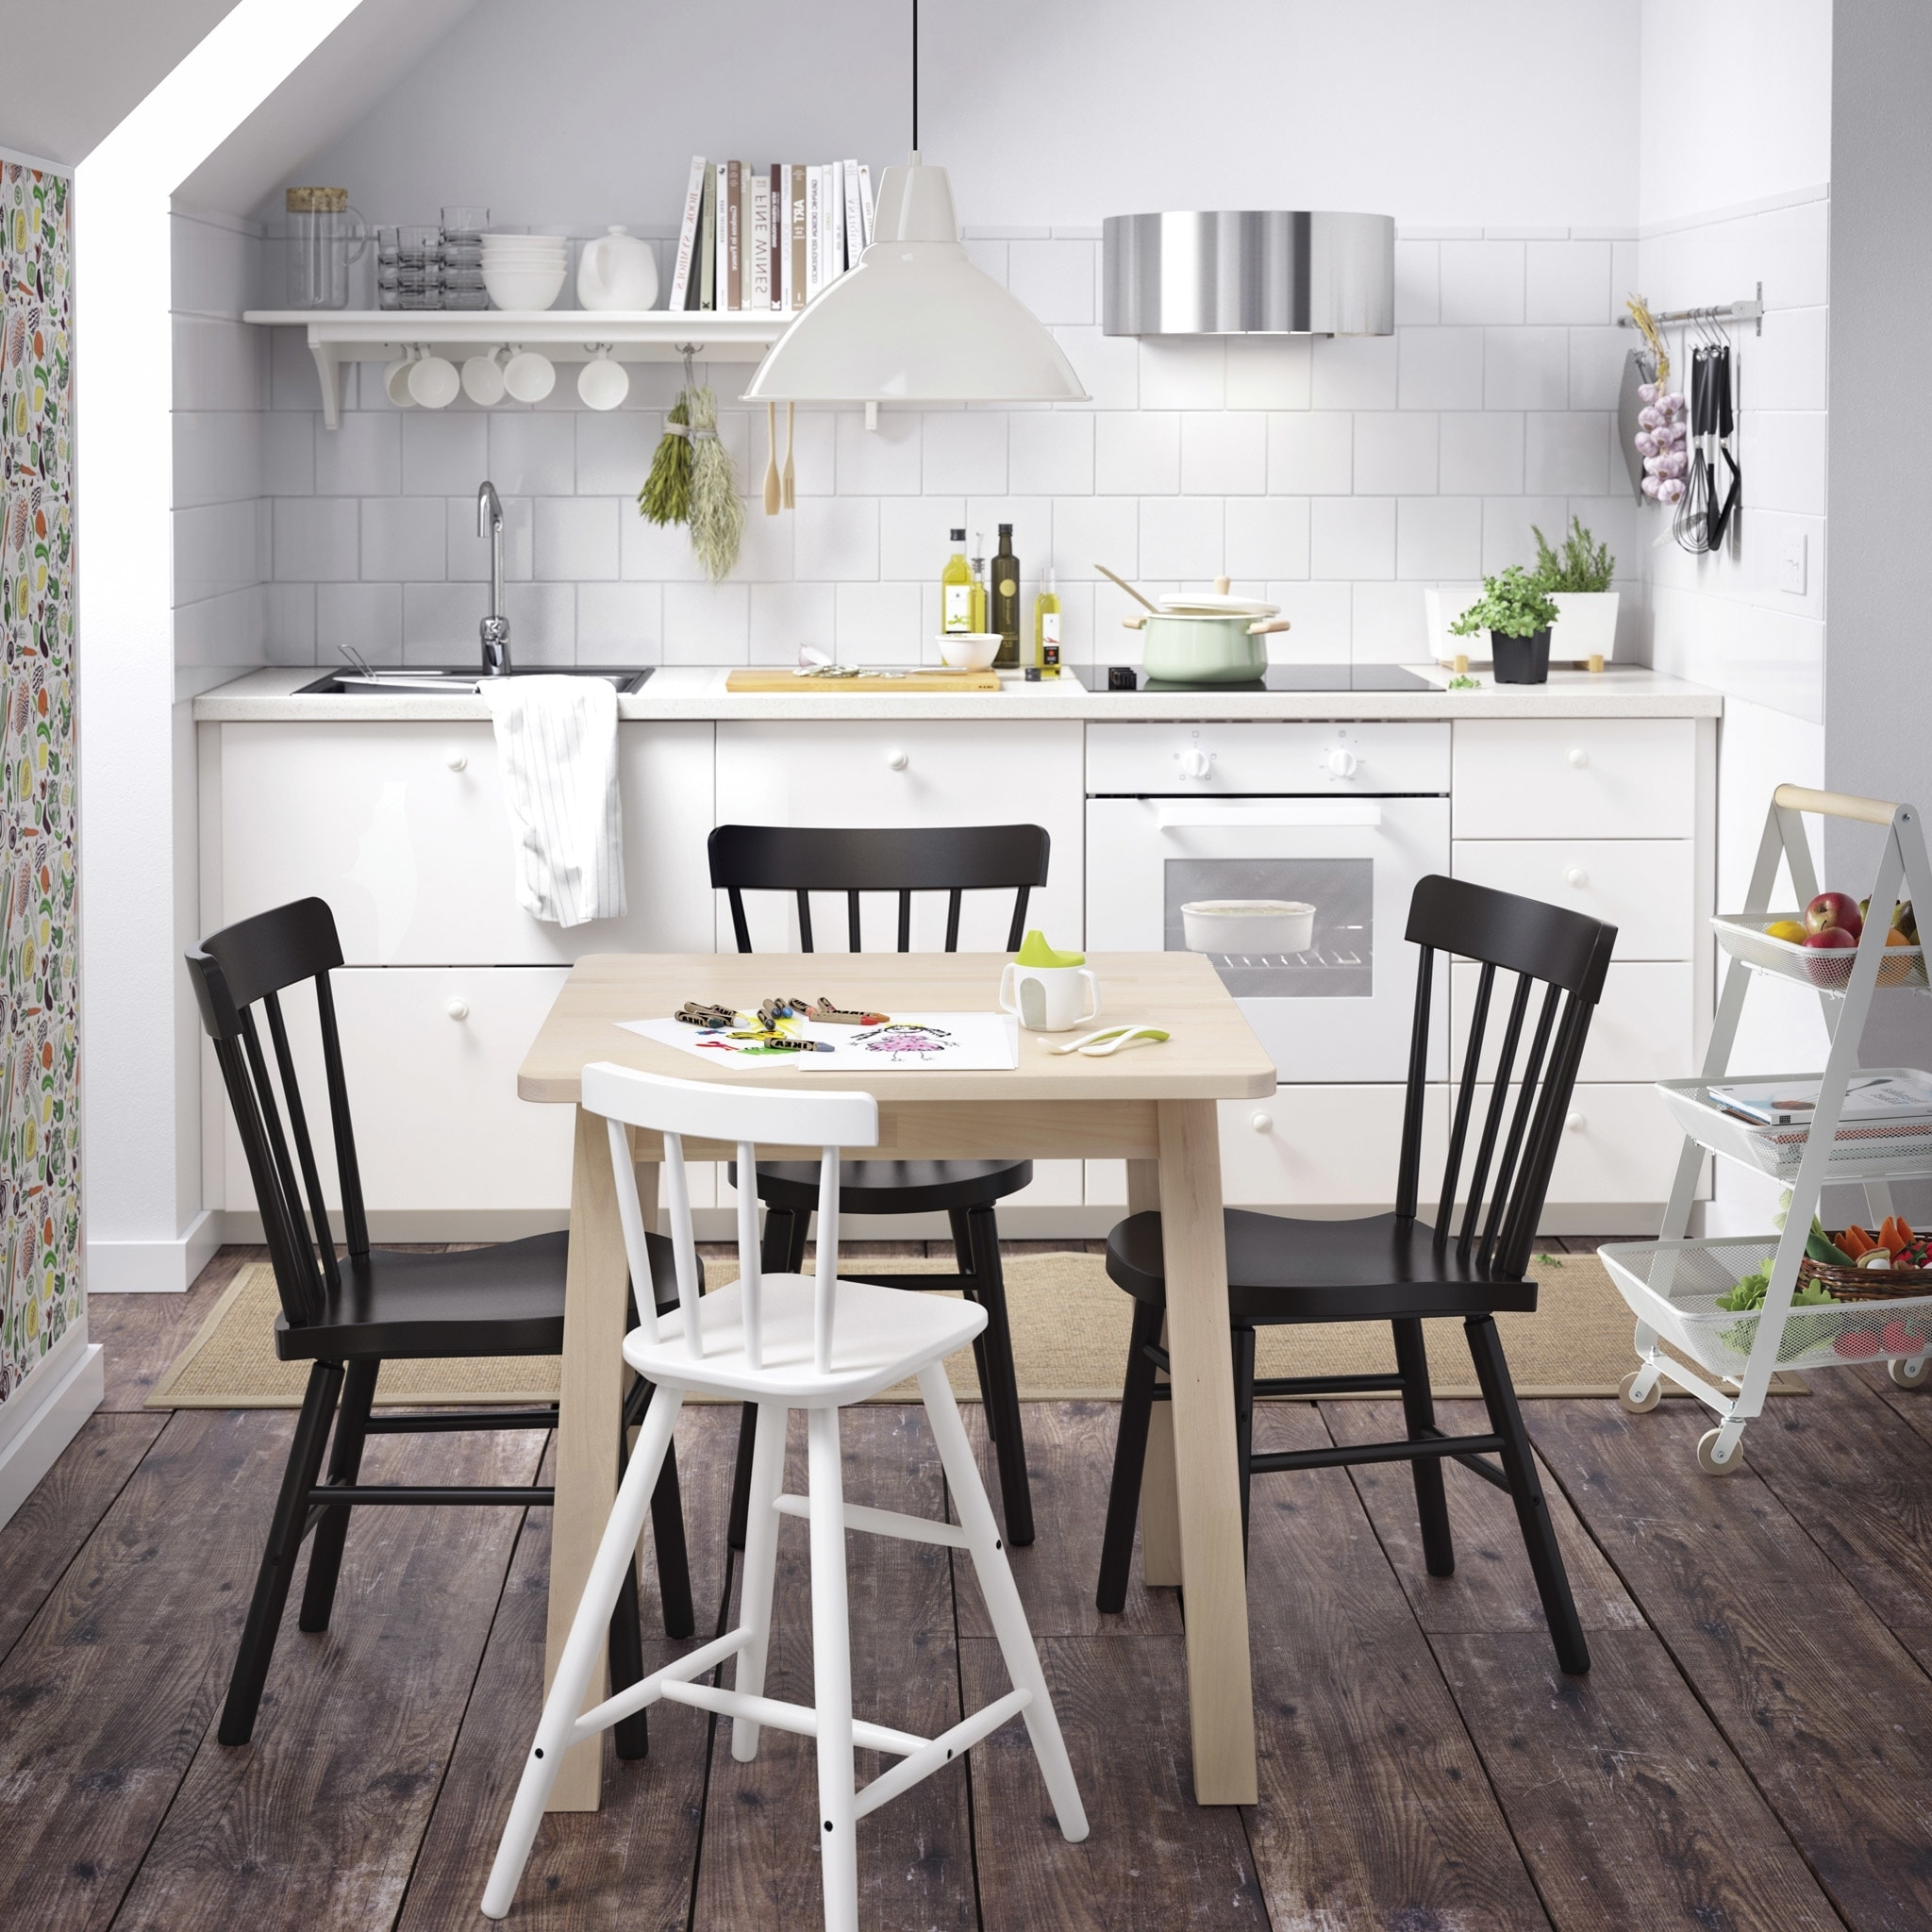 Current Dining Room Furniture & Ideas (View 6 of 25)